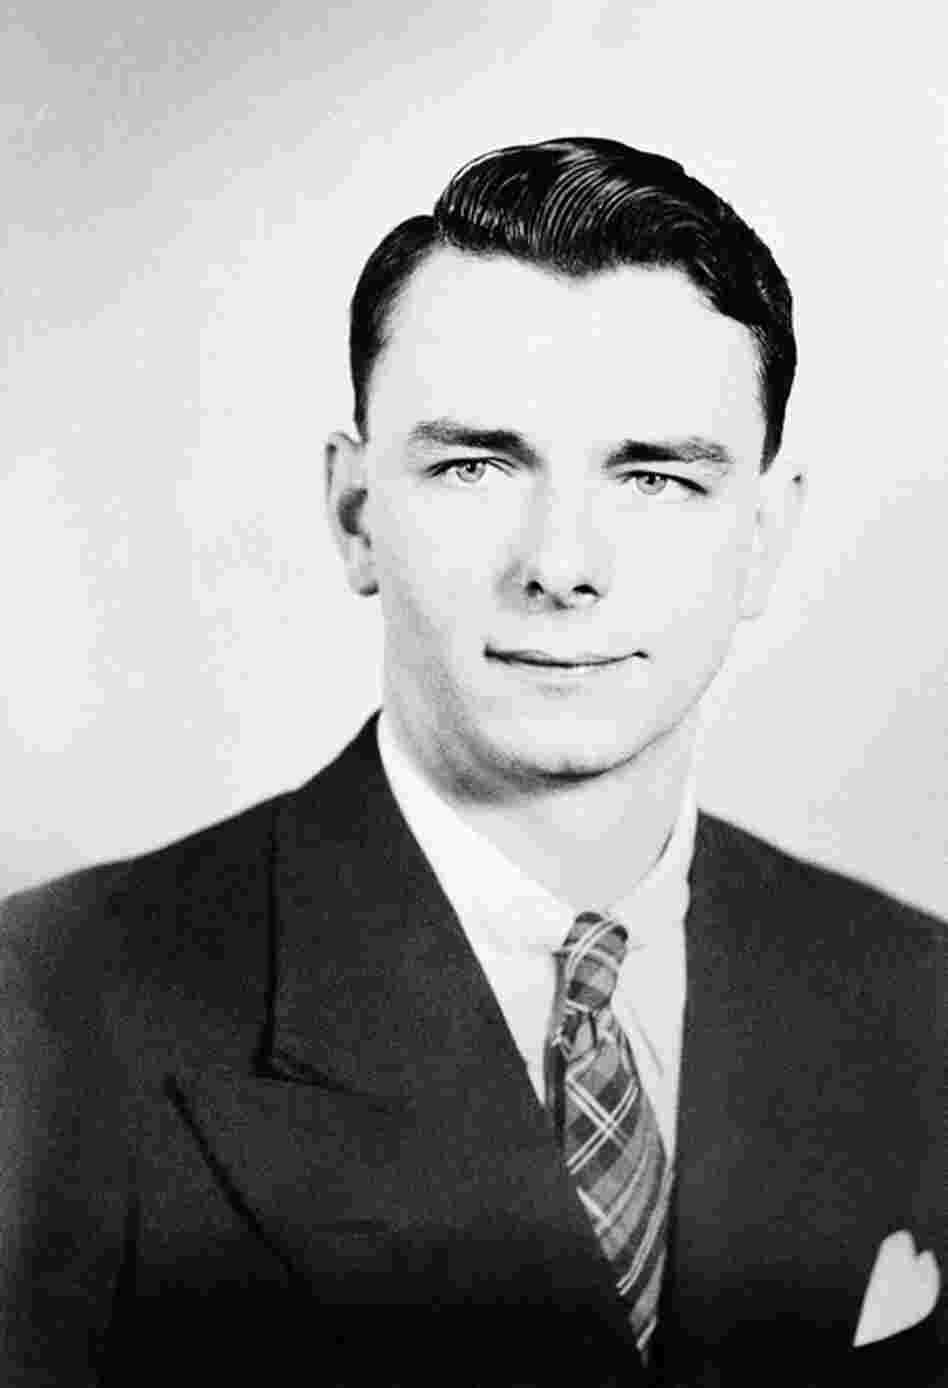 Sen. Byrd, shown here in 1957, the year before he was elected to the United States Senate, was the longest-serving member in Congressional history.